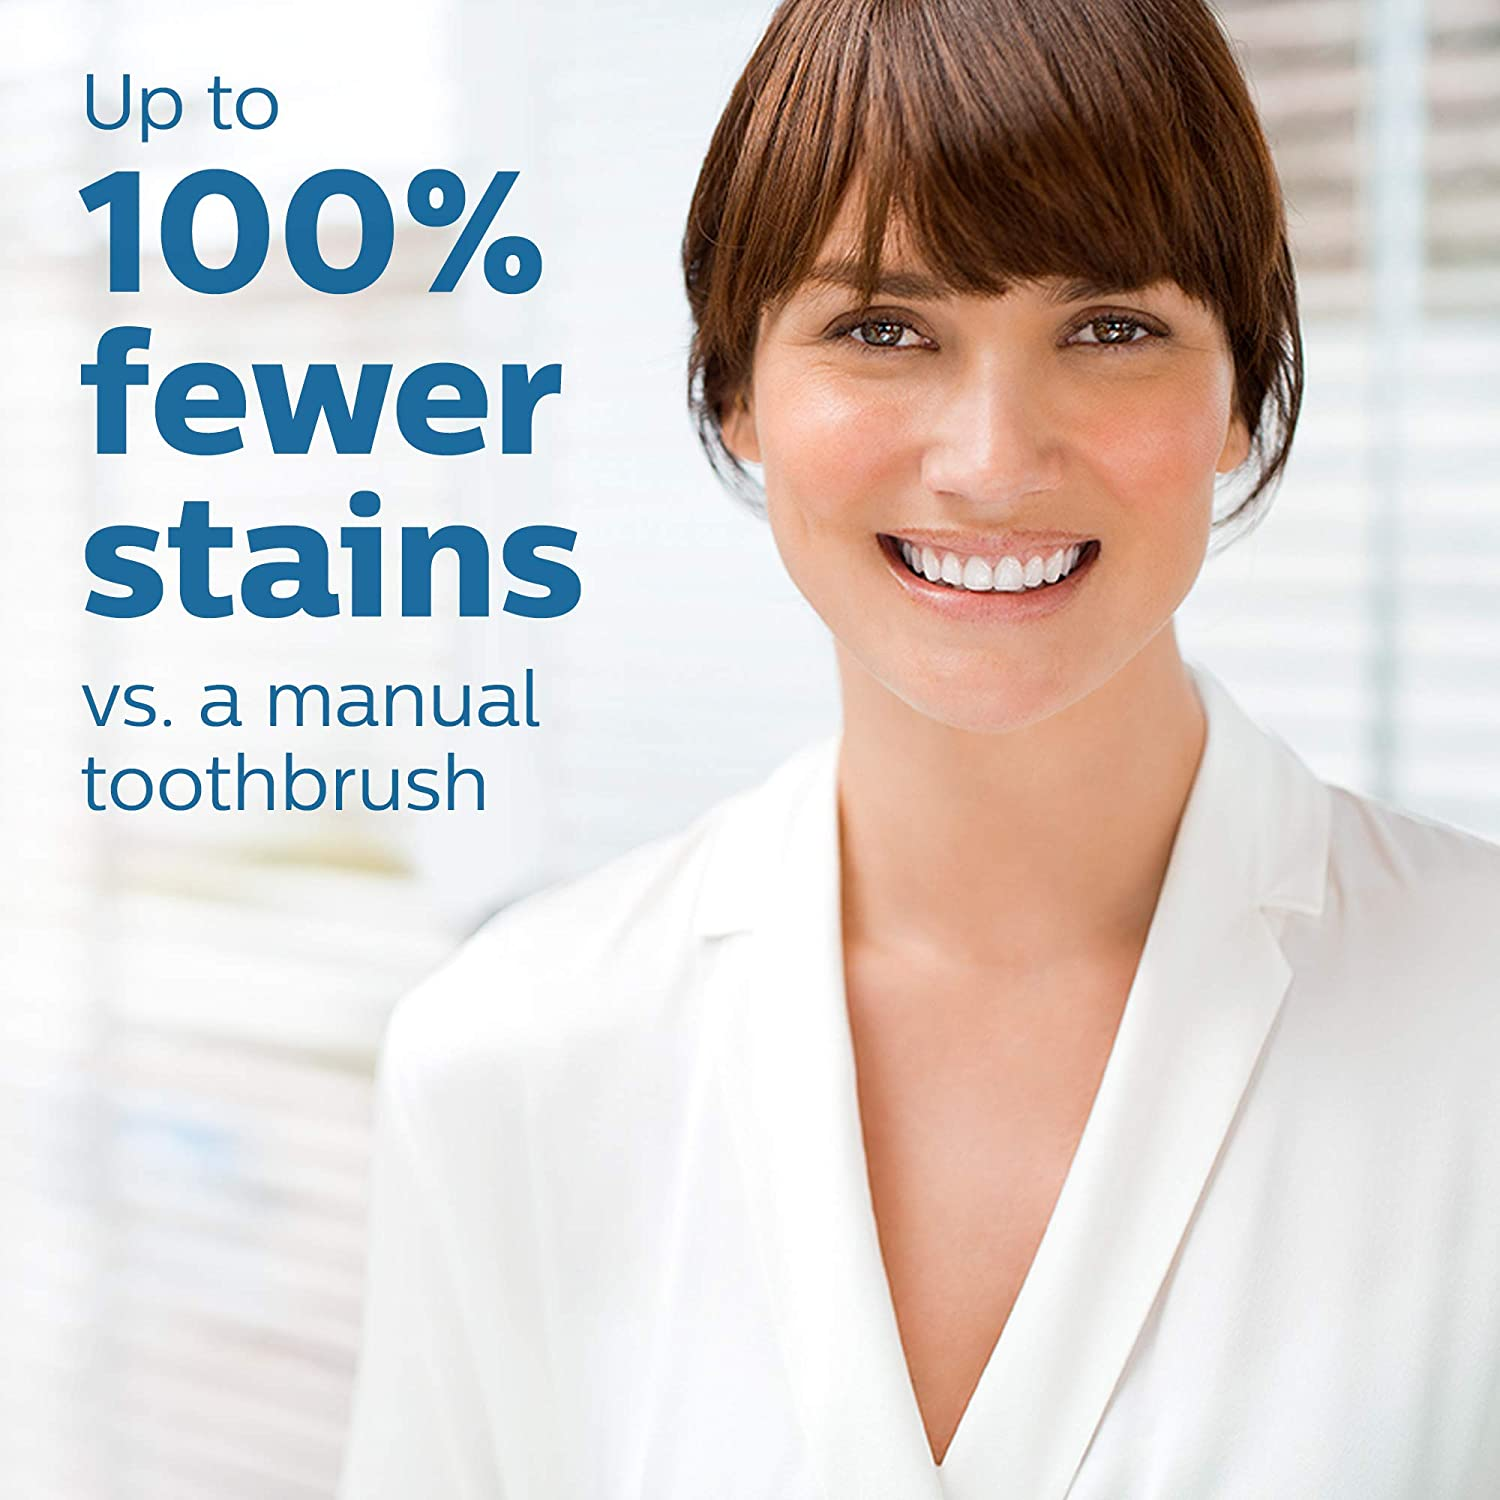 Fewer stains vs manual toothbrush